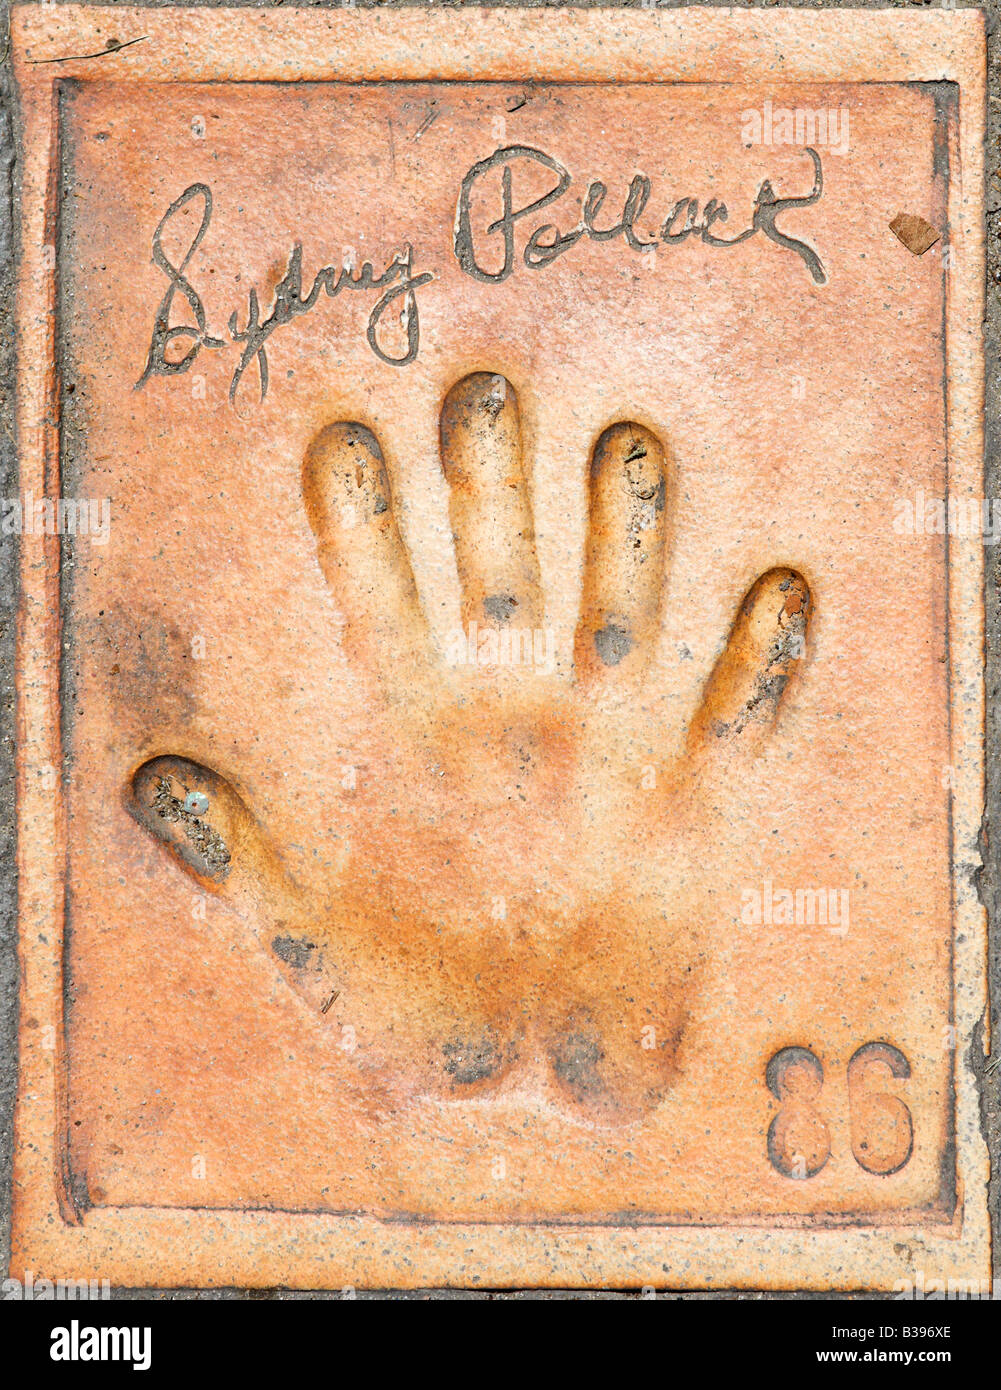 Sydney Pollack handprint on the sidewalk outside the Palais des Festivals, Cannes, Cote d Azur, Provence, France - Stock Image